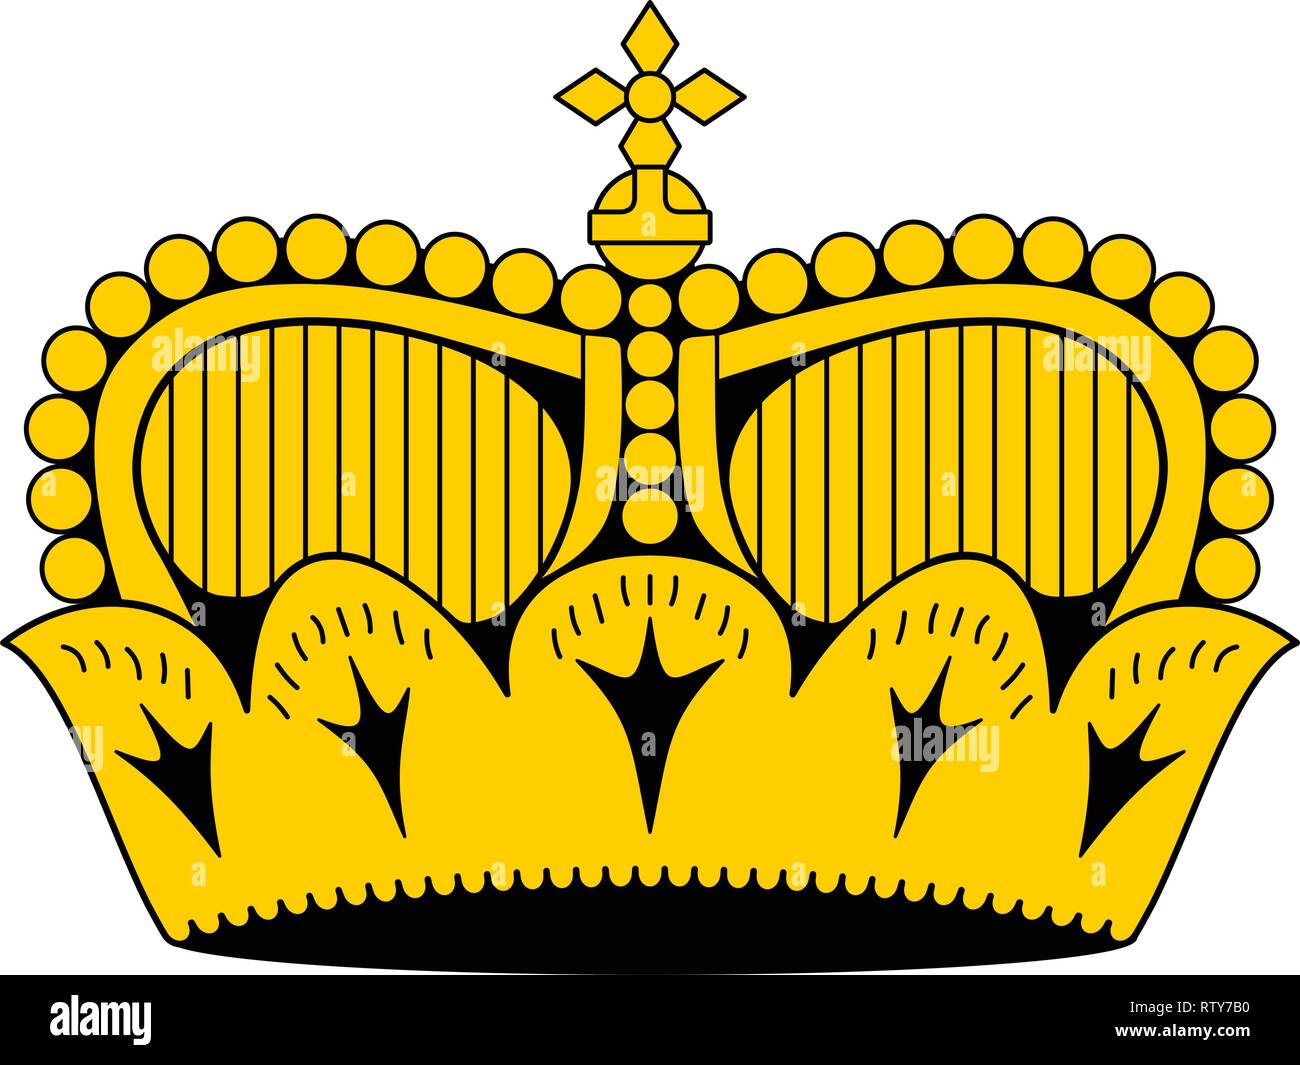 Liechtenstein princely hat (crown) as it appears on national flag. Correct proportions 4:3 - Stock Vector